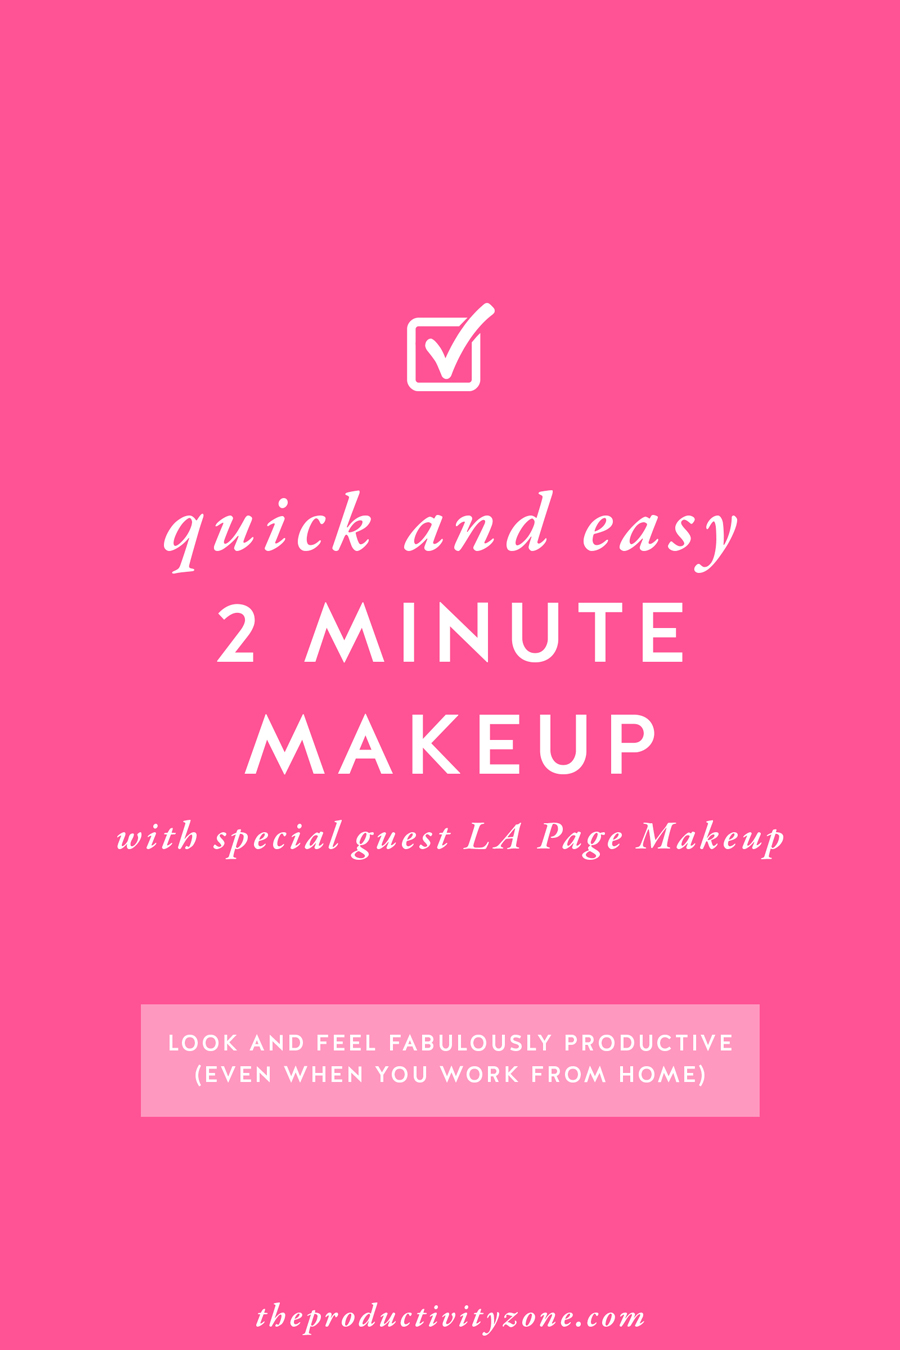 Let's make lipstick makes me productive a thing!! Female entrepreneurs and work from home moms, you can feel pretty AND productive (even when you work from home) with this quick and easy 2 minute makeup routine from LA Page Makeup on The Productivity Zone!!